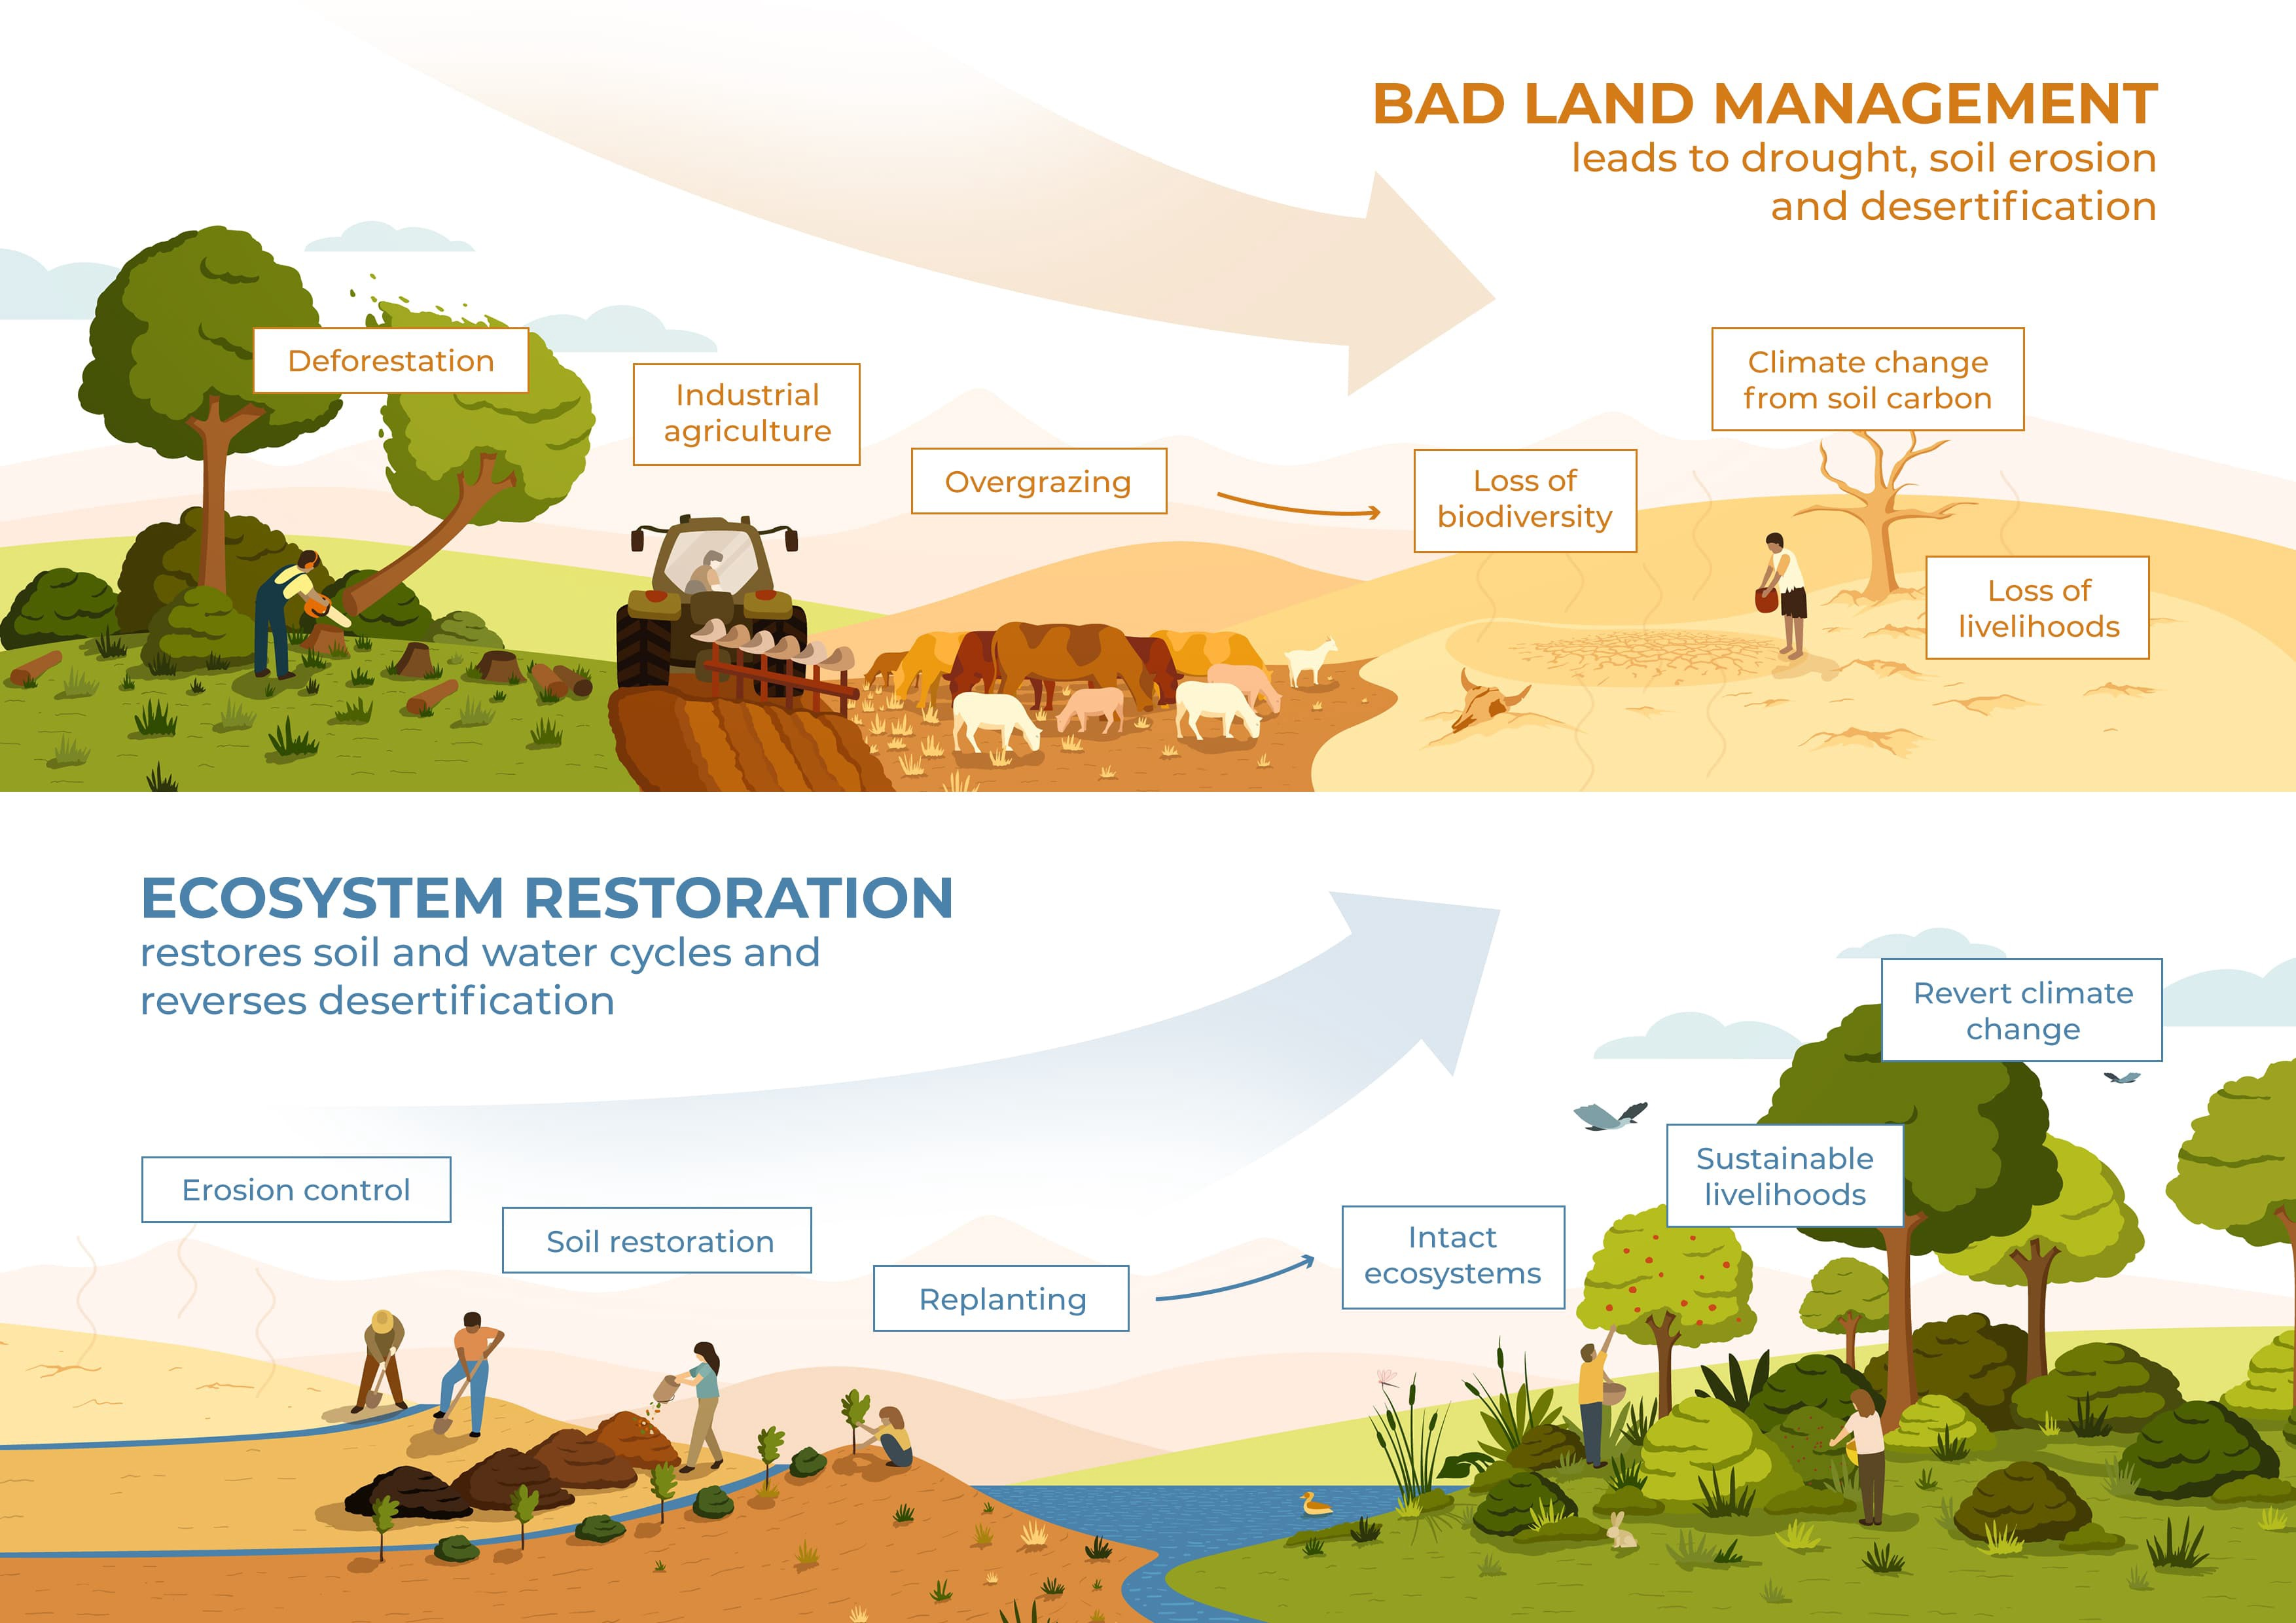 Making the most of the 'UN Decade on Ecosystems Restoration